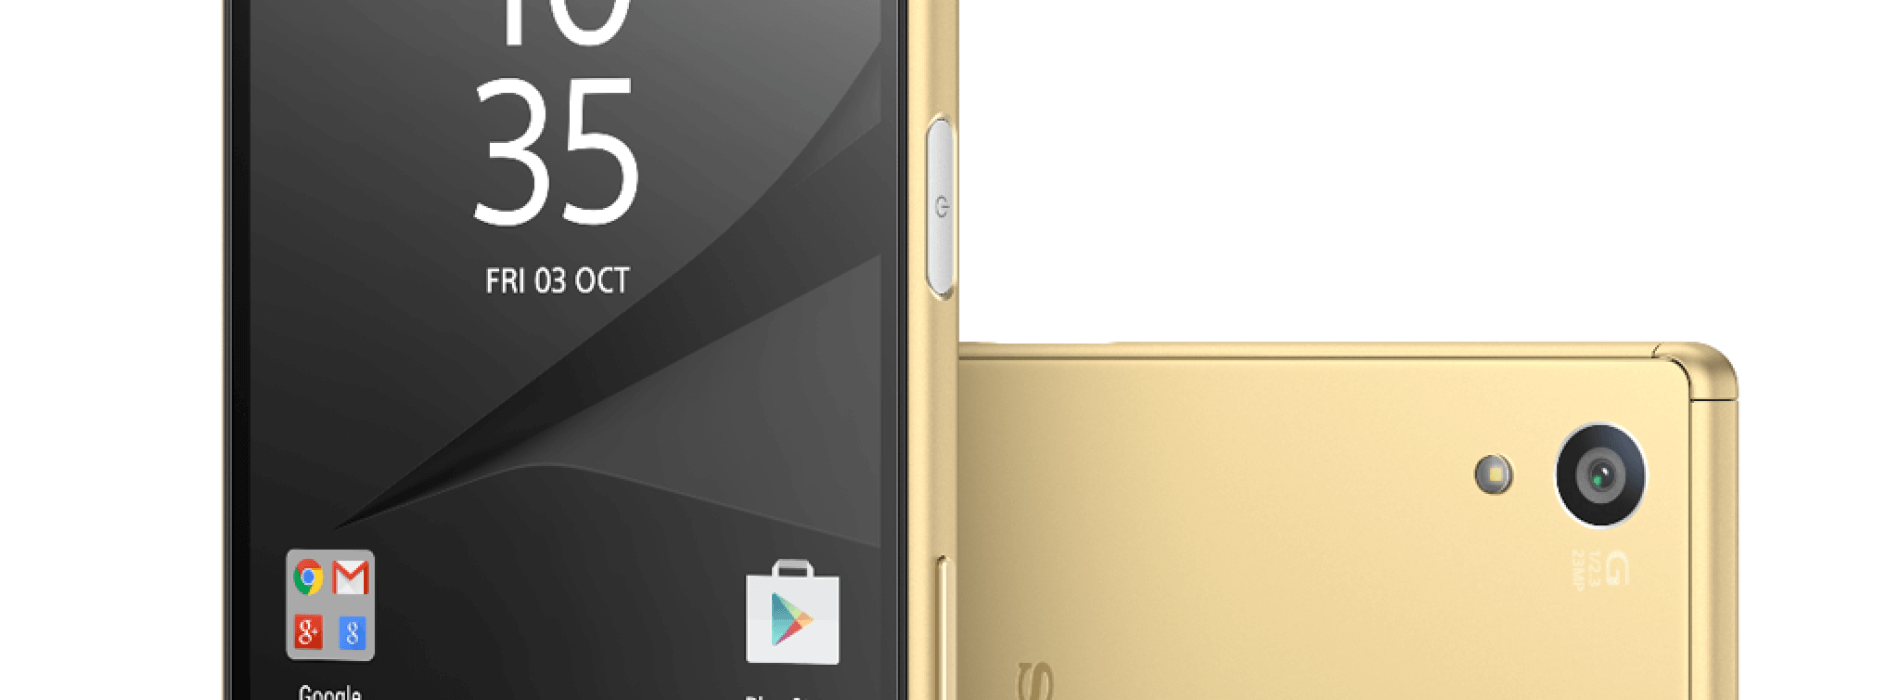 Ya disponible el Sony Xperia Z5